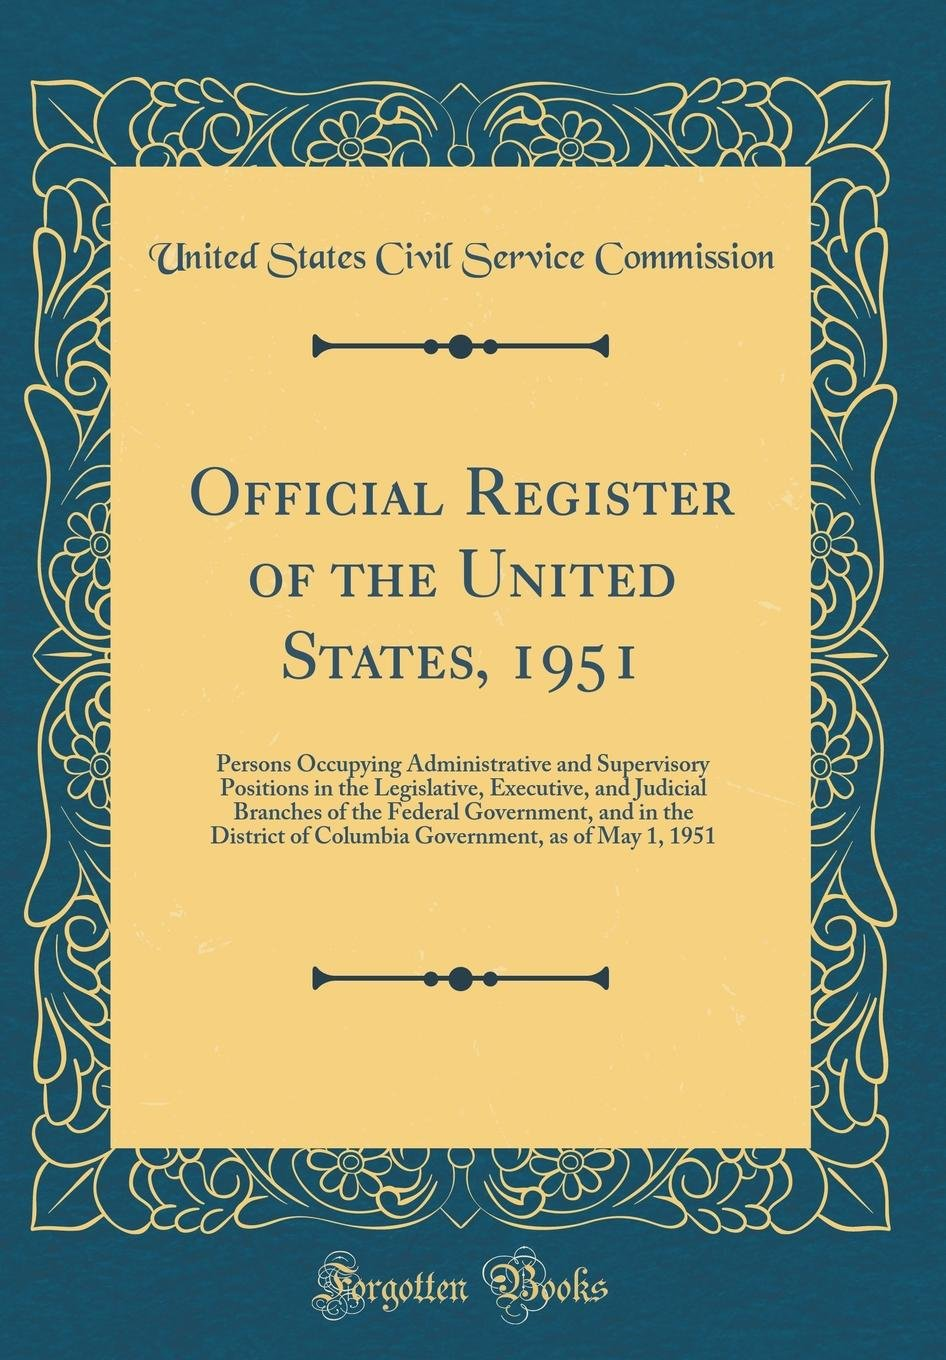 Official Register of the United States, 1951: Persons Occupying Administrative and Supervisory Positions in the Legislative, Executive, and Judicial ... of Columbia Government, as of May 1, 1951 PDF